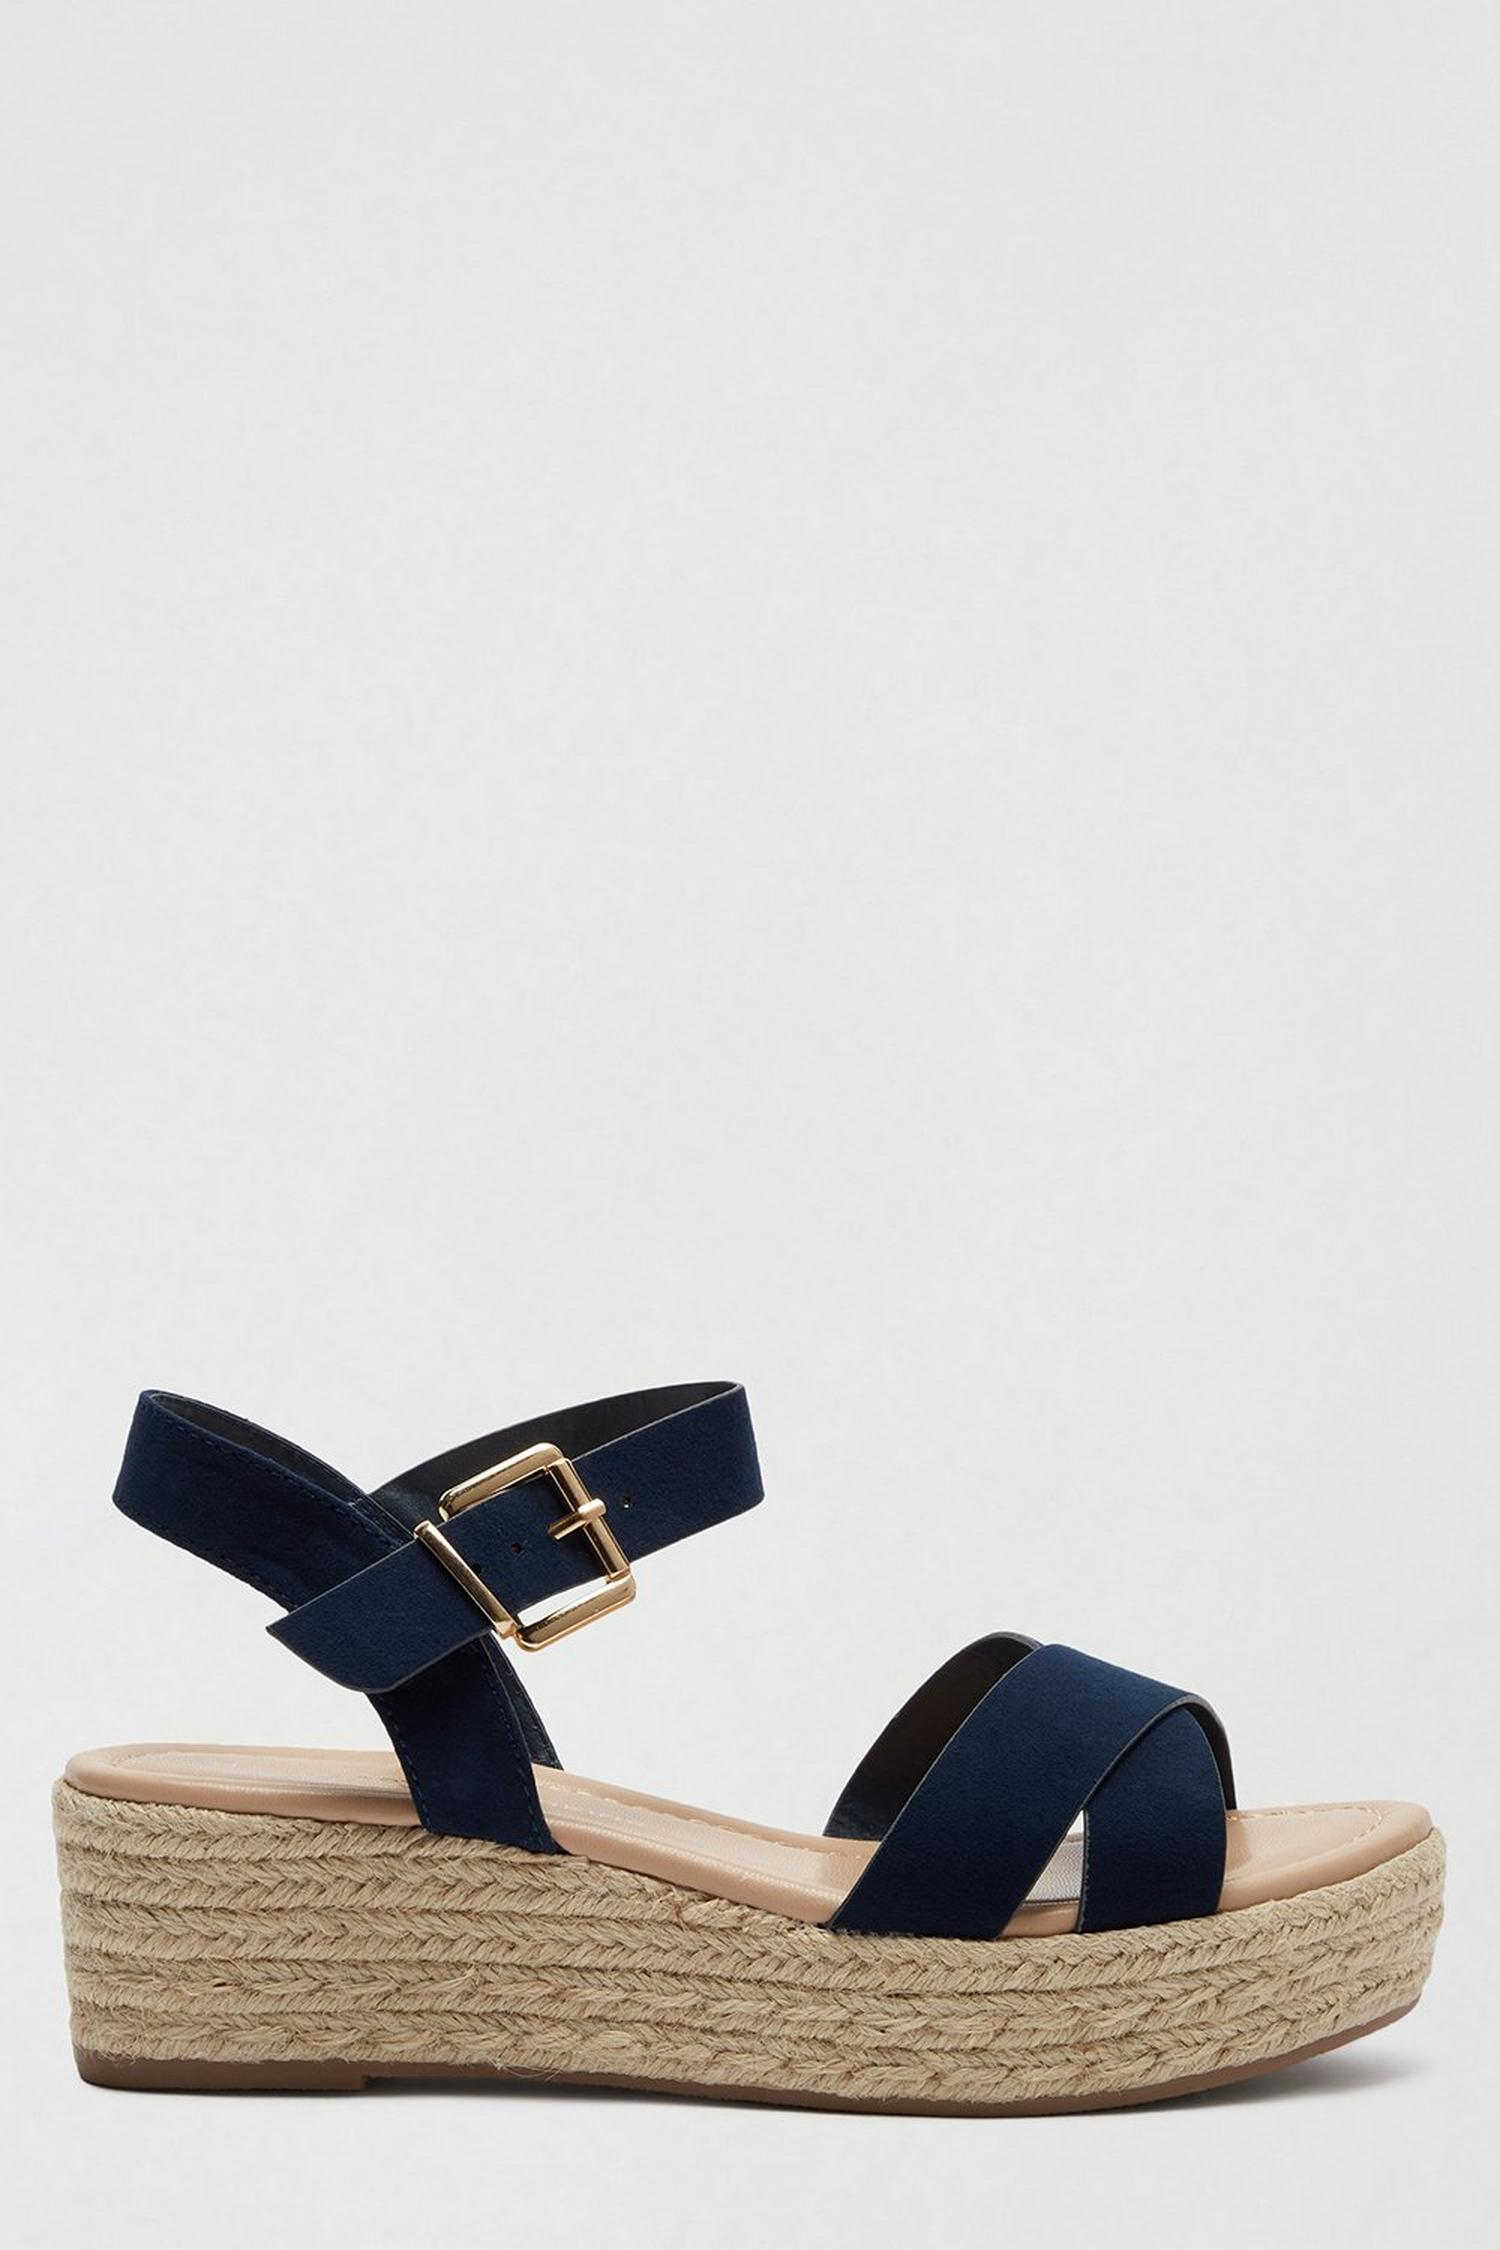 148 Wide Fit Navy Reenie Wedge Sandals image number 2